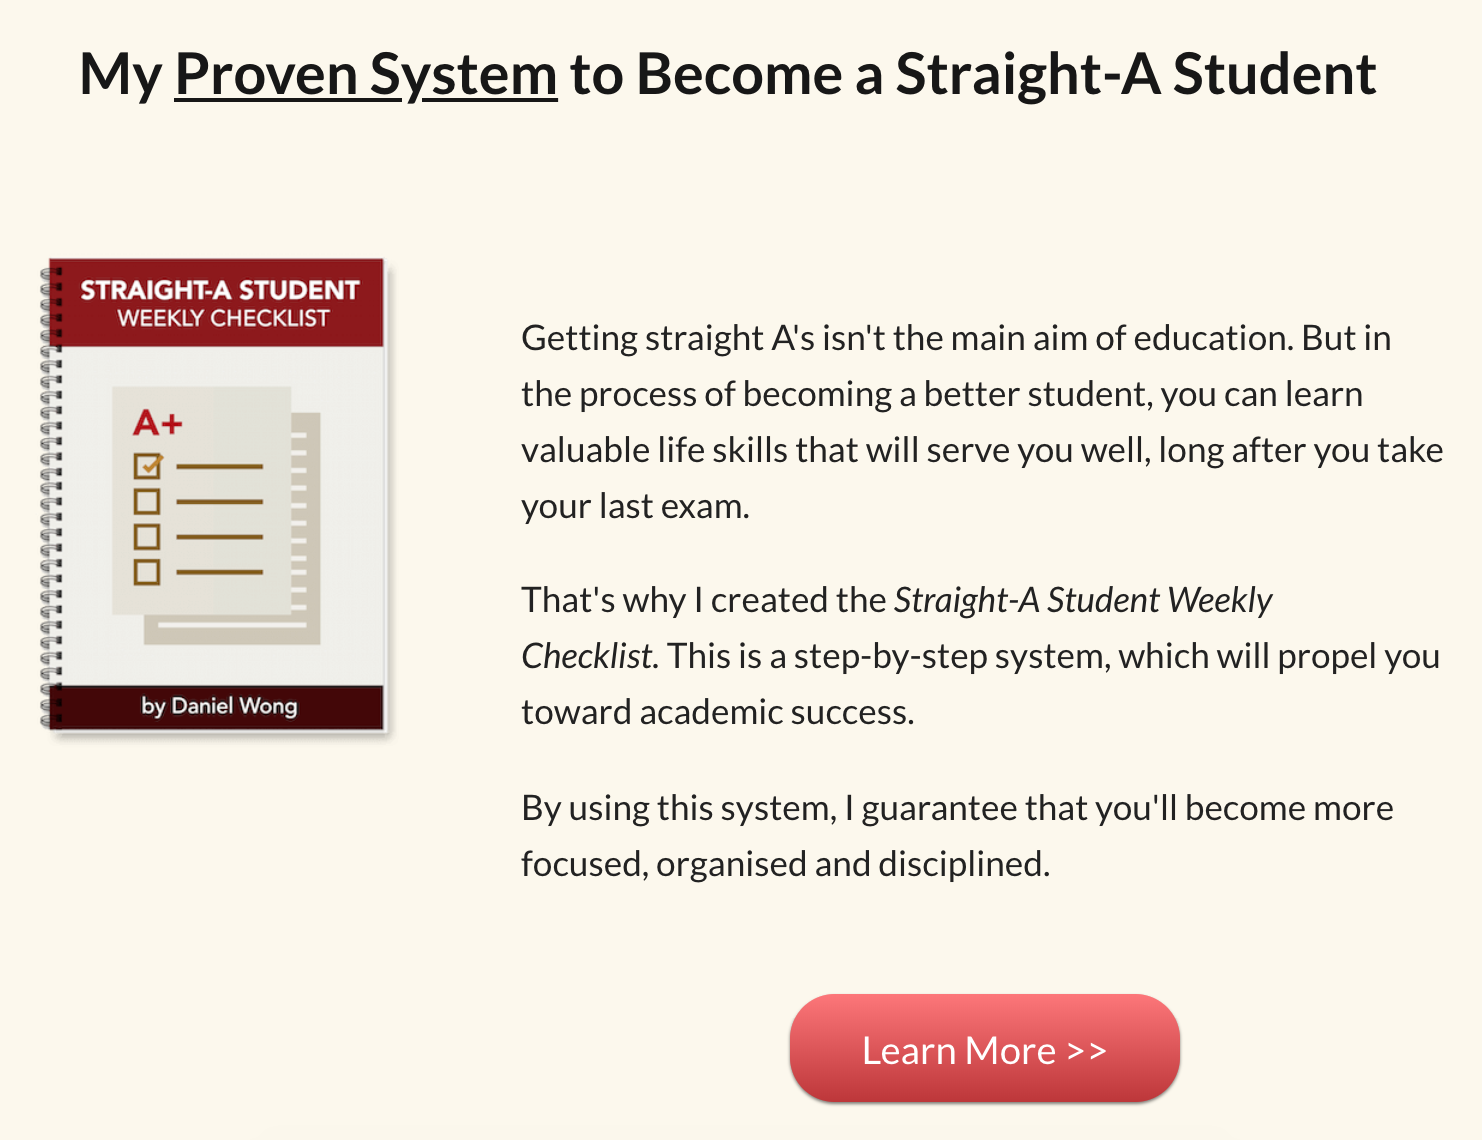 Straight-A Student Weekly Checklist by Daniel Wong